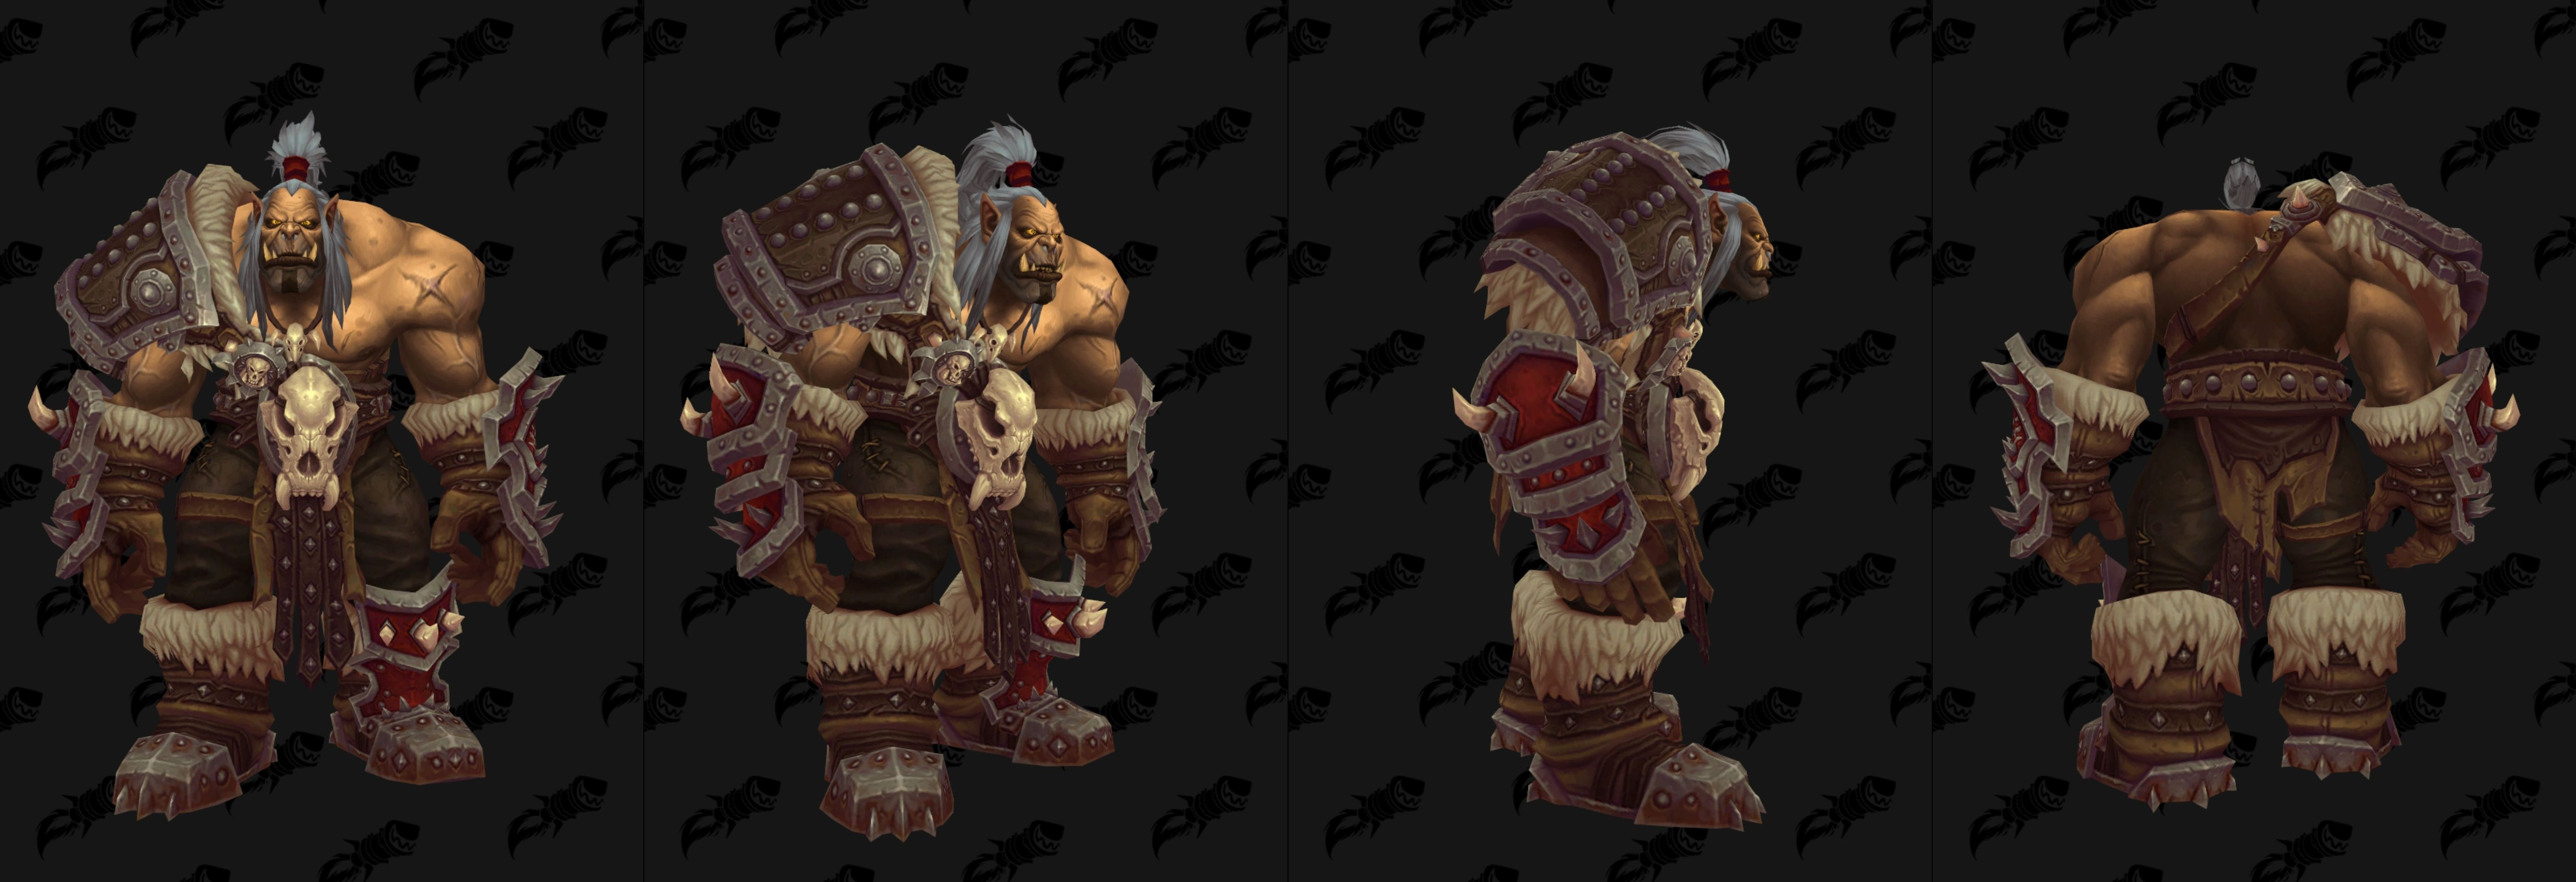 The Story of the Mag'har Orcs with Nobbel87 - Wowhead News